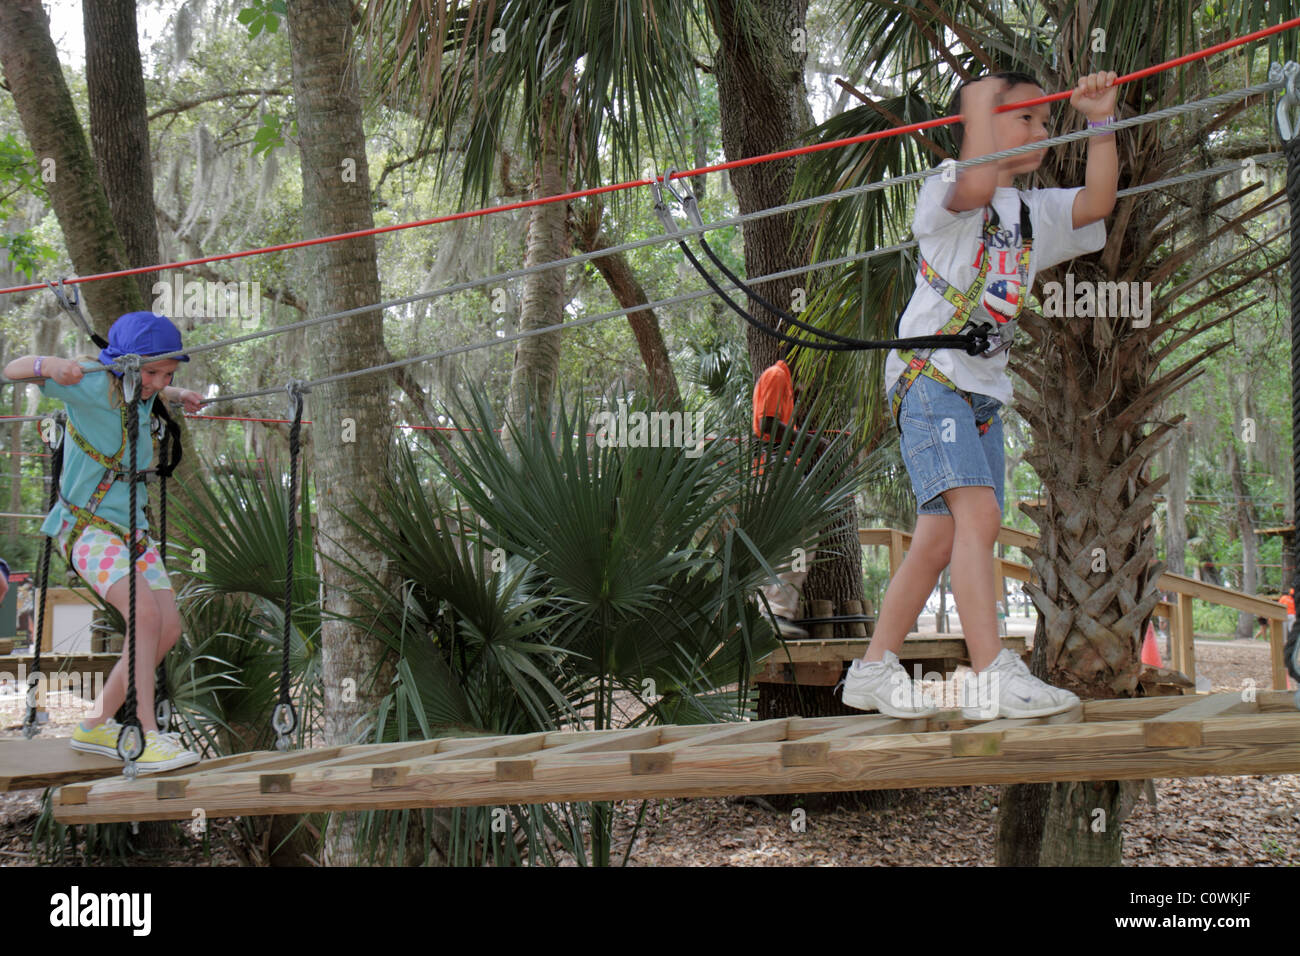 Orlando Florida Sanford Central Florida Zoo & and Botanical Gardens ZOOm Air Adventure Park aerial treetop tree Stock Photo